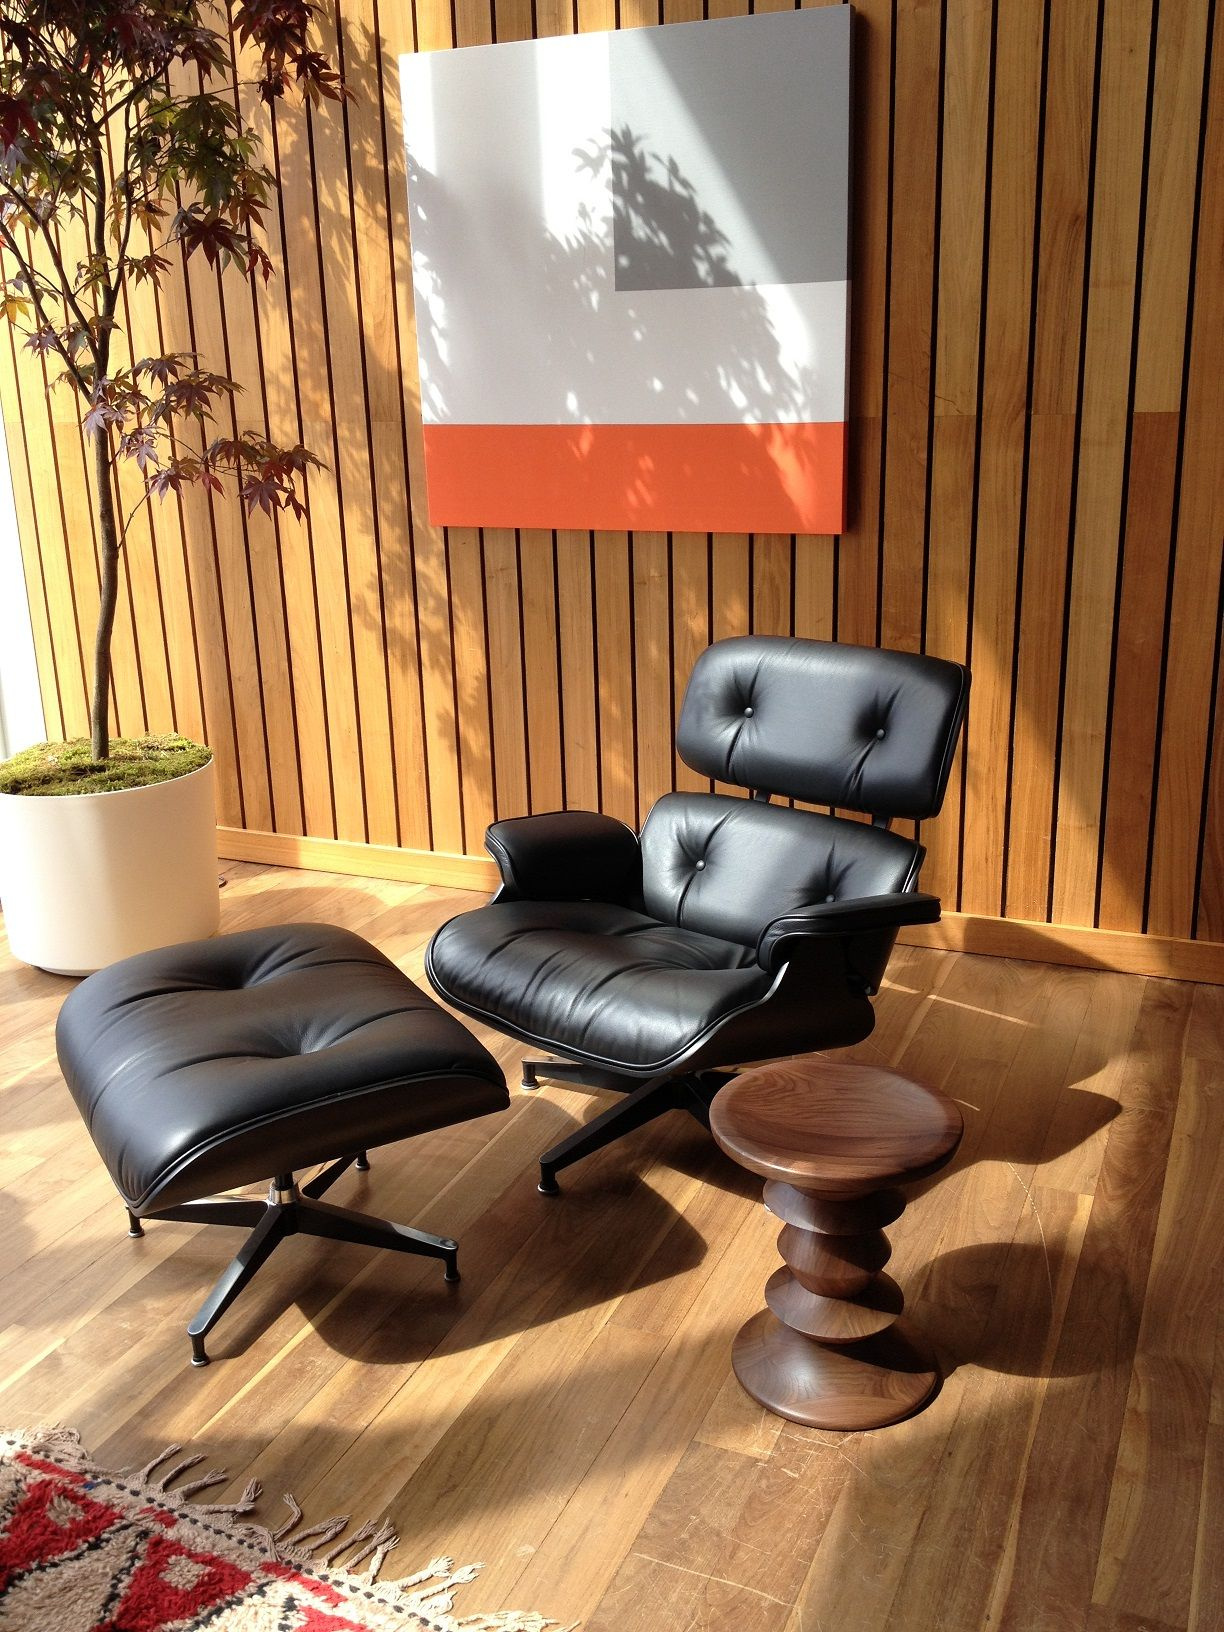 ICFF 2014 New All Black Eames Classic Lounge and Ottoman